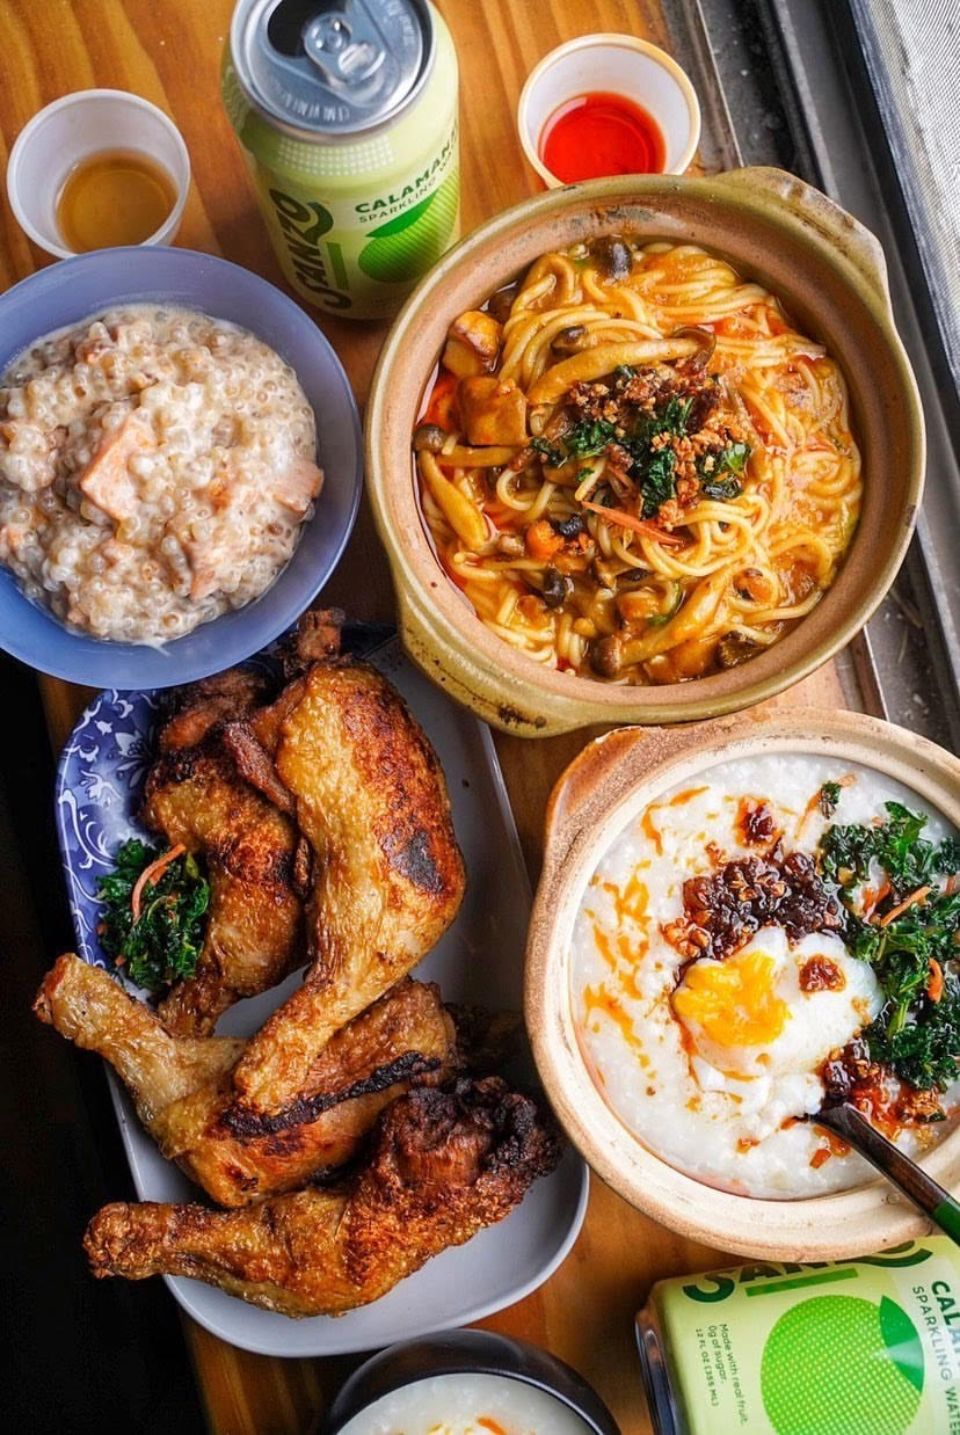 This Ny Resto Recreated Filipino Chinese Food And Other Cuisines For Distance Dining